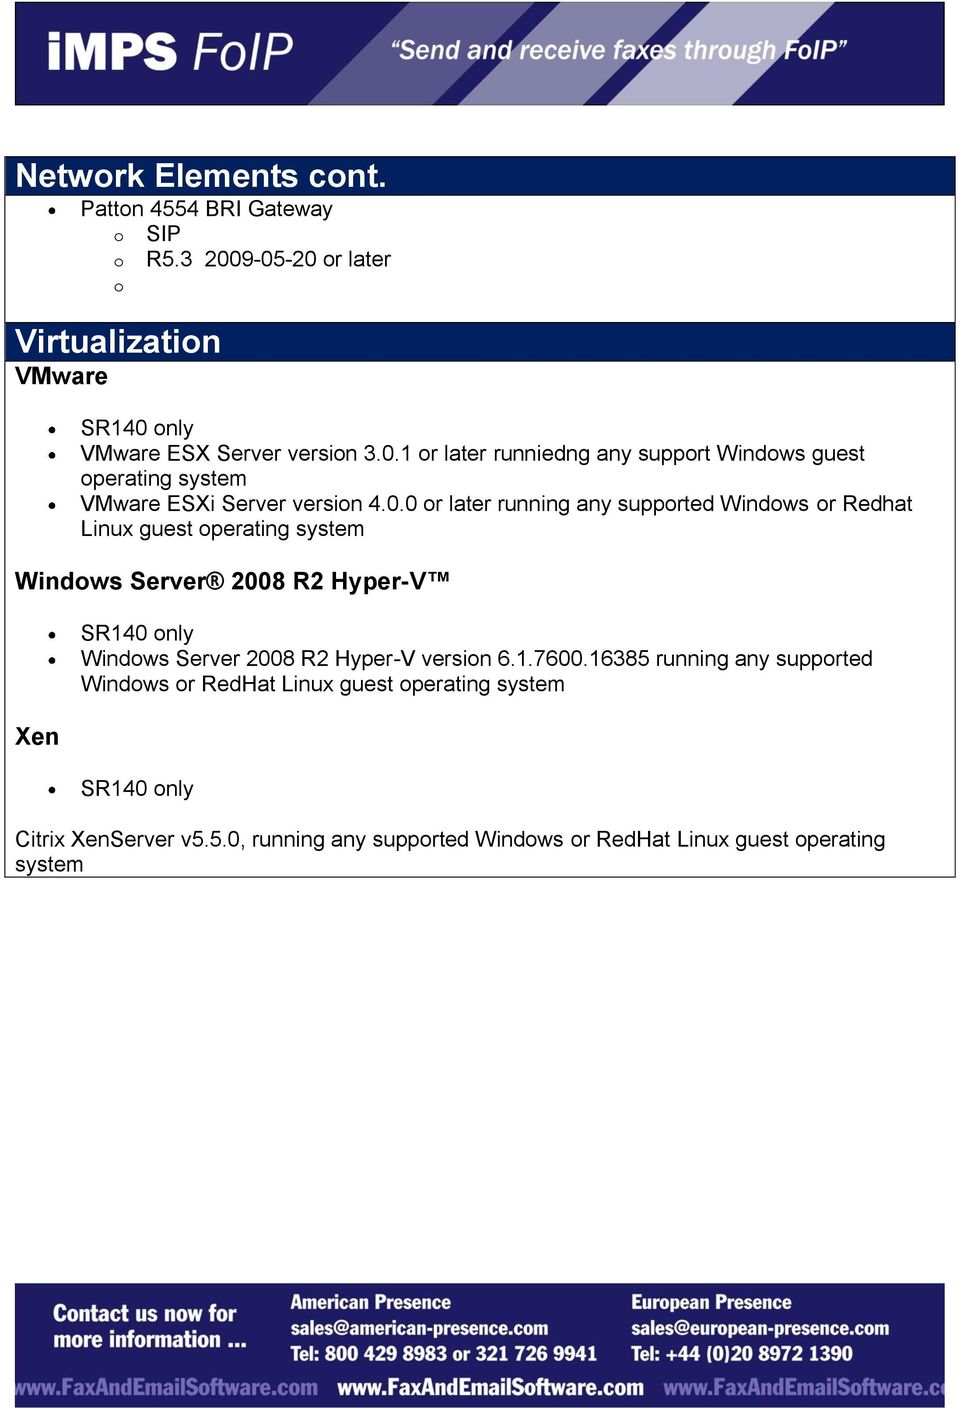 2008 R2 Hyper-V version 6.1.7600.16385 running any supported Windows or RedHat Linux guest operating system Citrix XenServer v5.5.0, running any supported Windows or RedHat Linux guest operating system